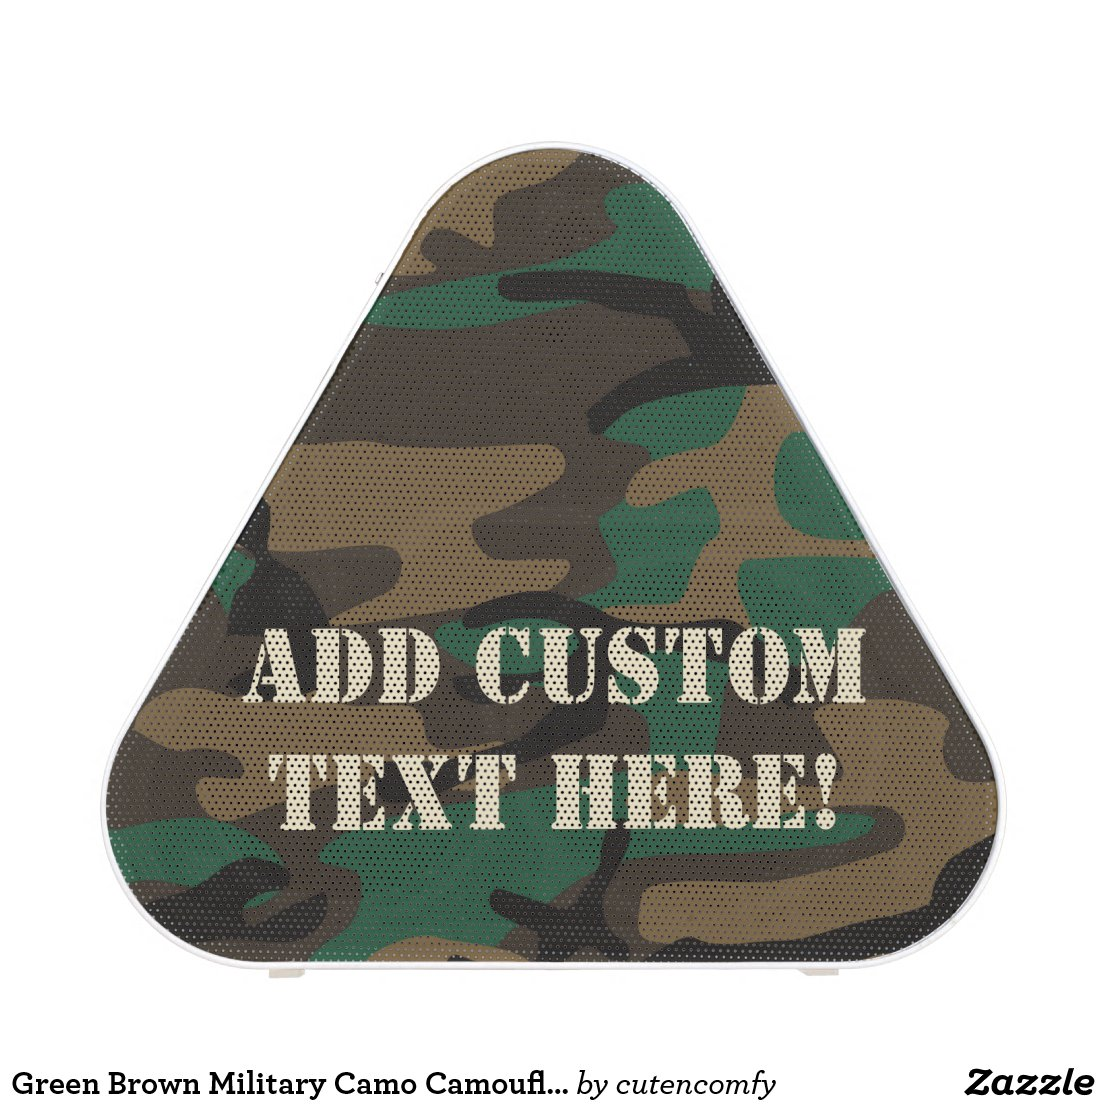 Green Brown Military Camo Camouflage